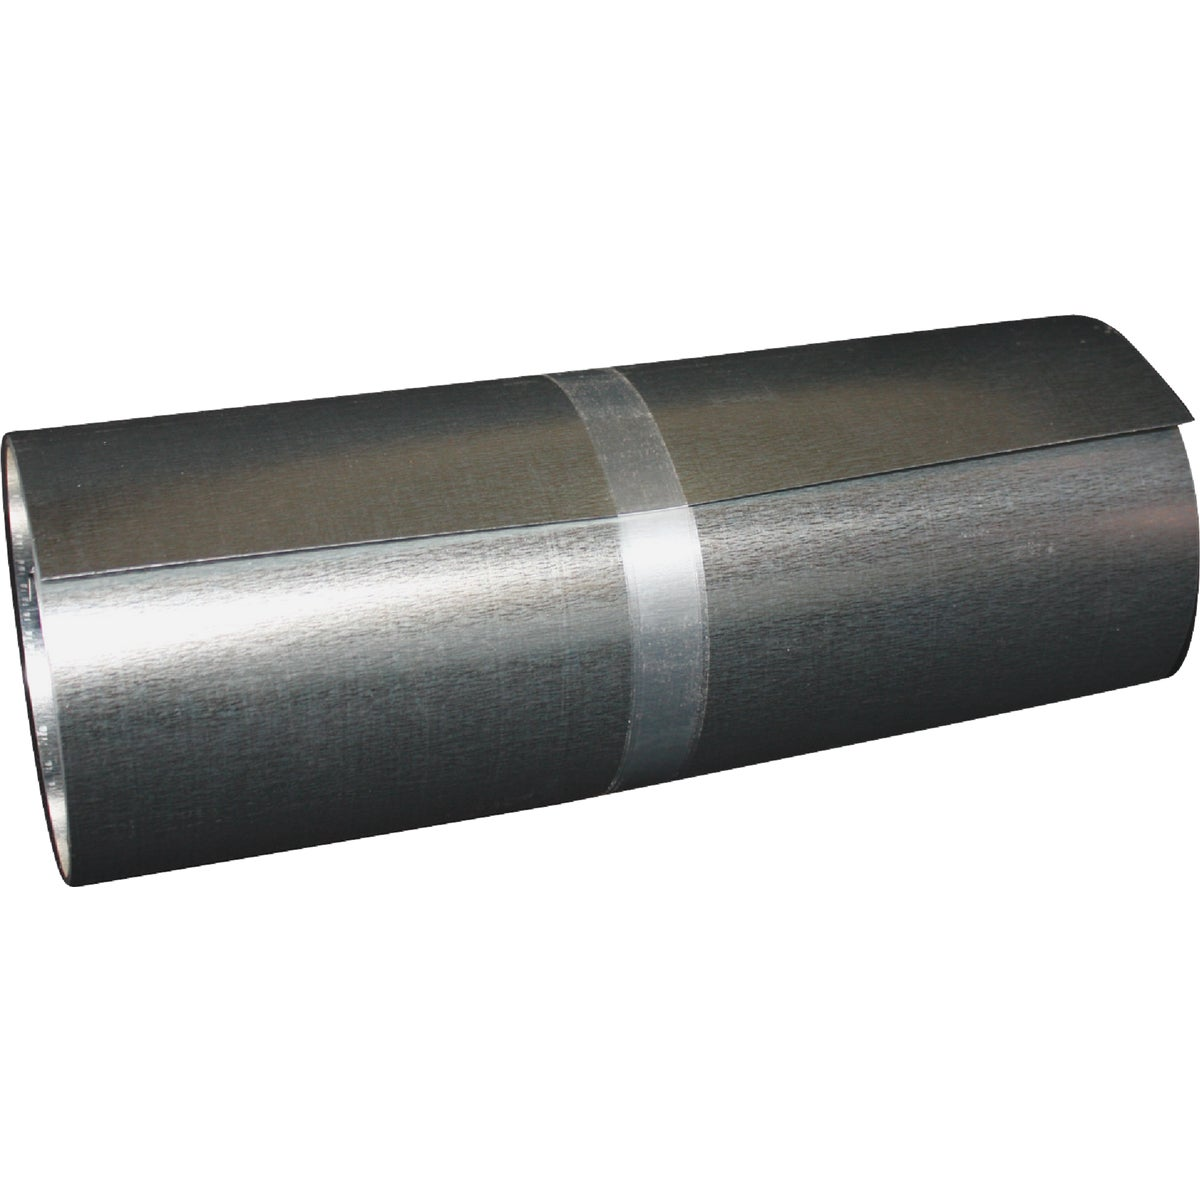 "10""X25' GALV ROLL VALLEY - 30035-GV10 by Klauer Mfg Co"